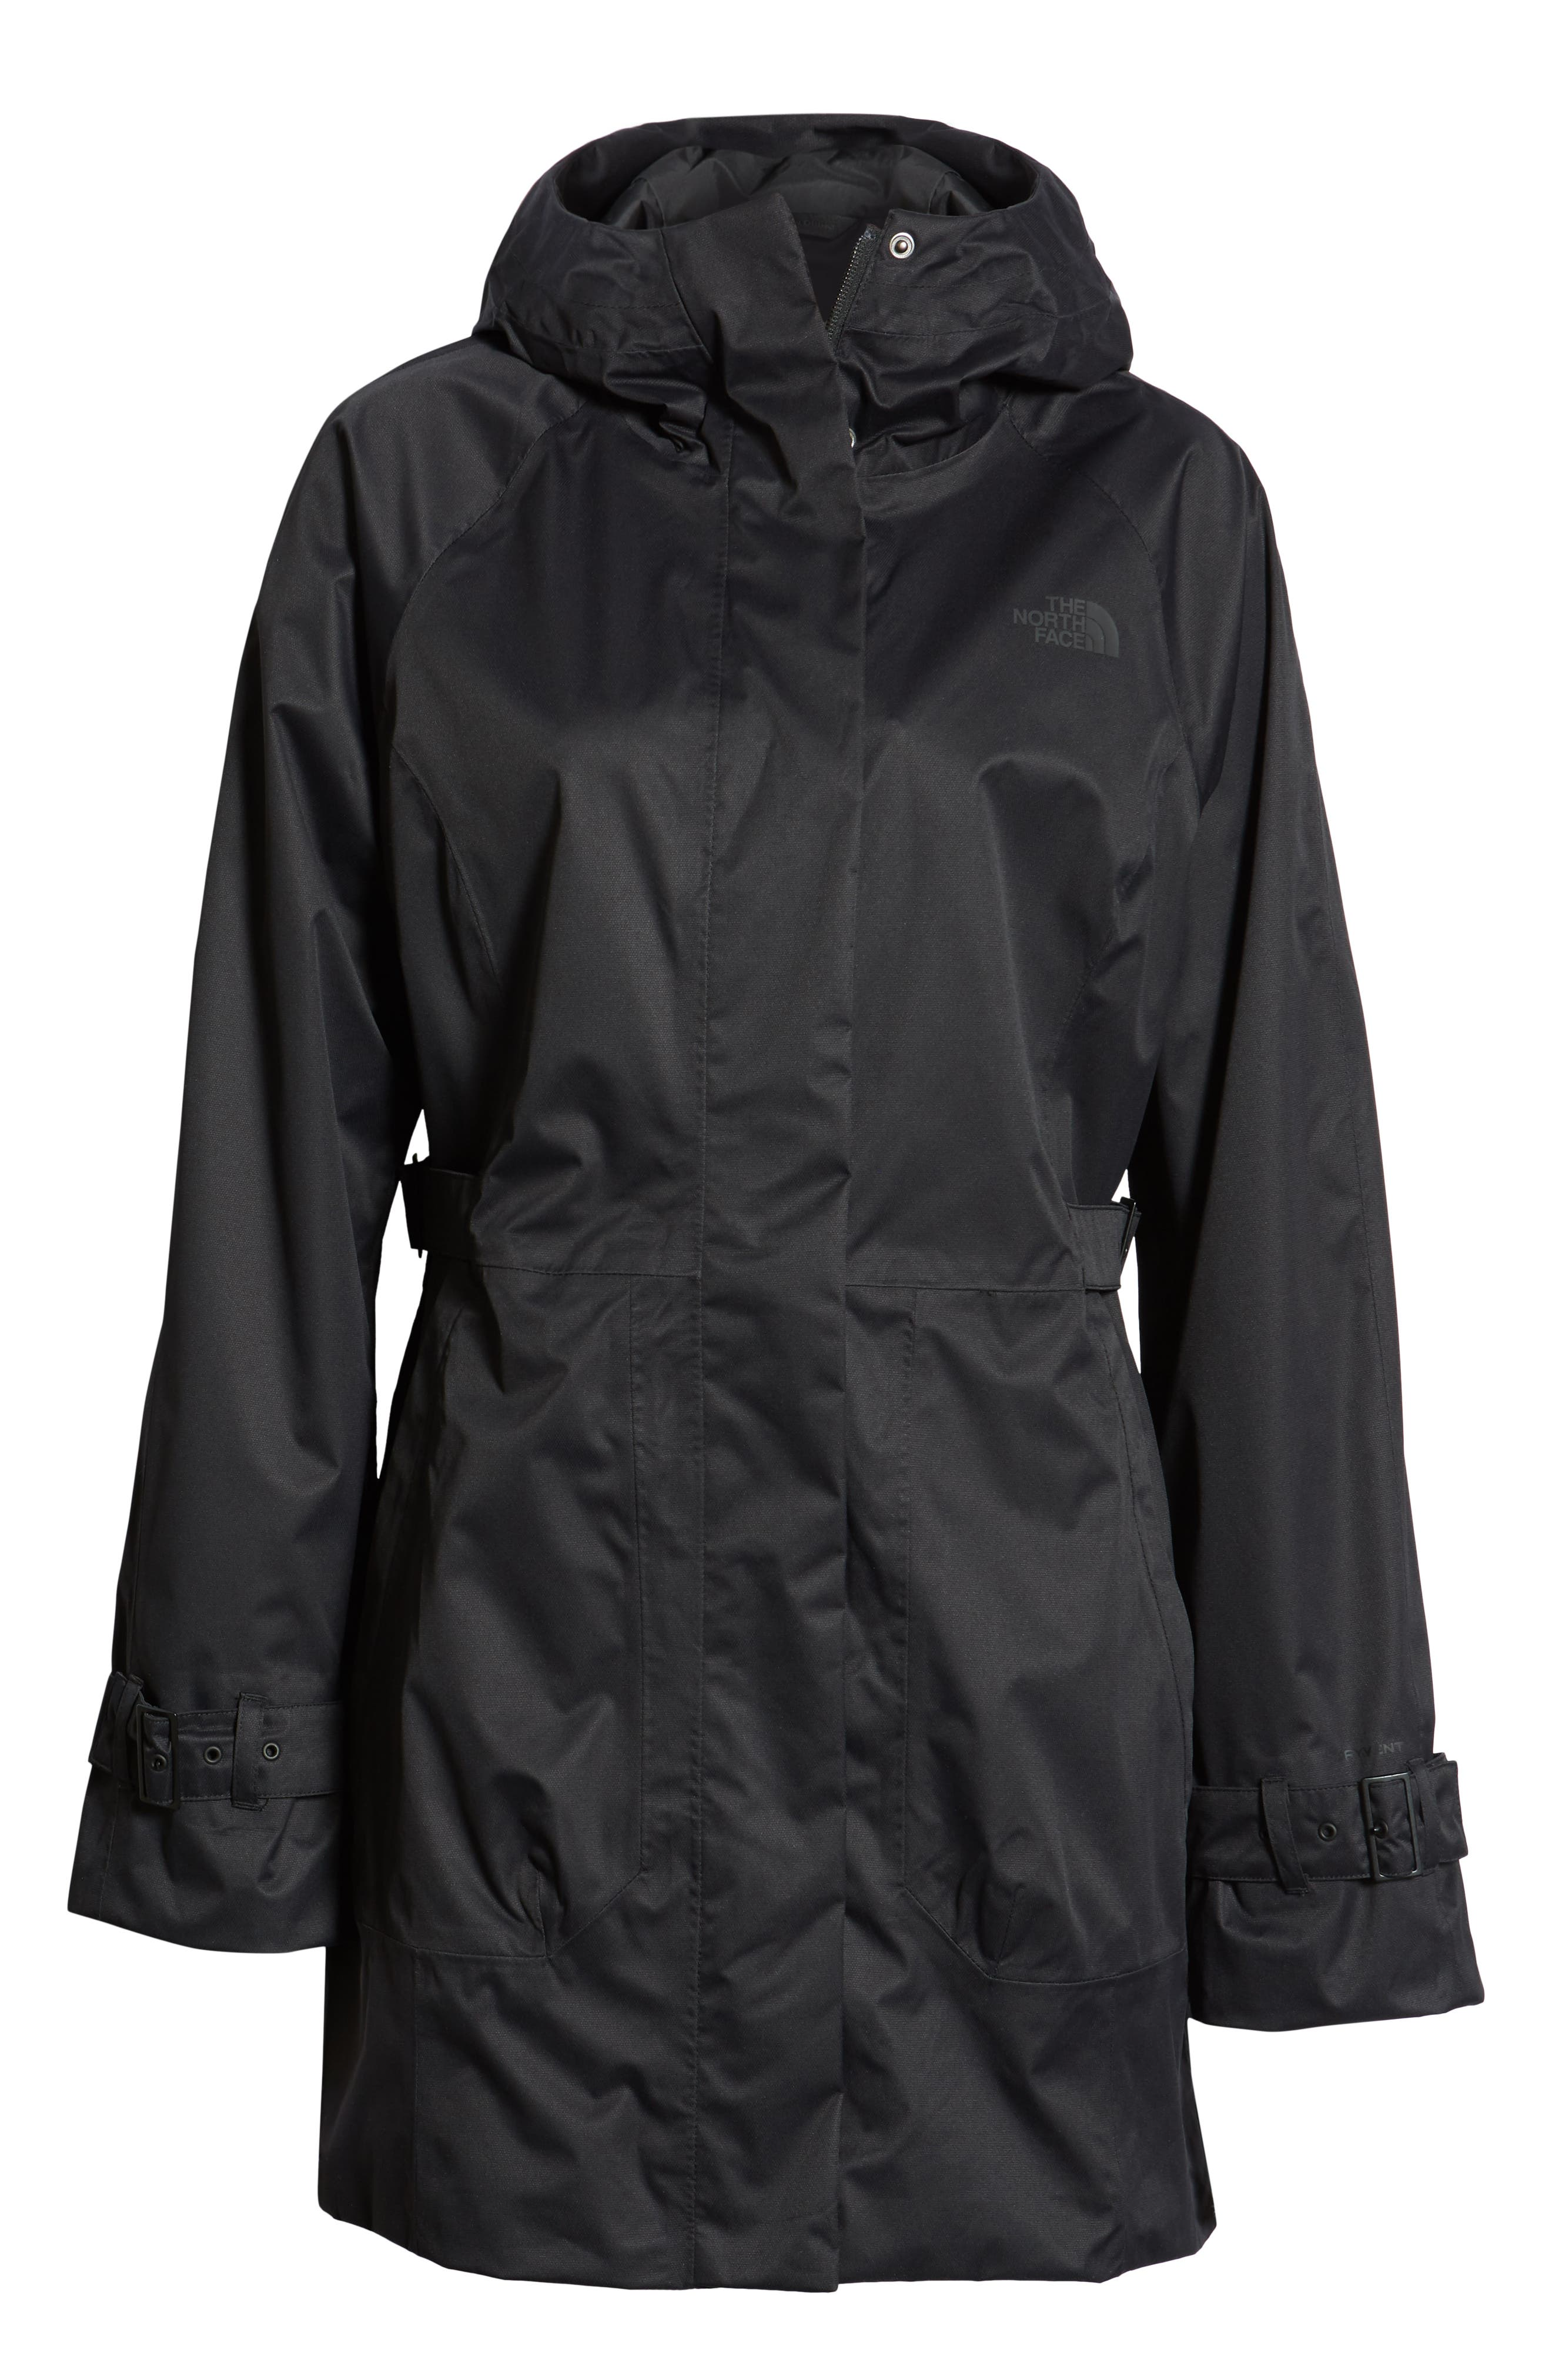 THE NORTH FACE, City Breeze Trench Raincoat, Alternate thumbnail 6, color, TNF BLACK